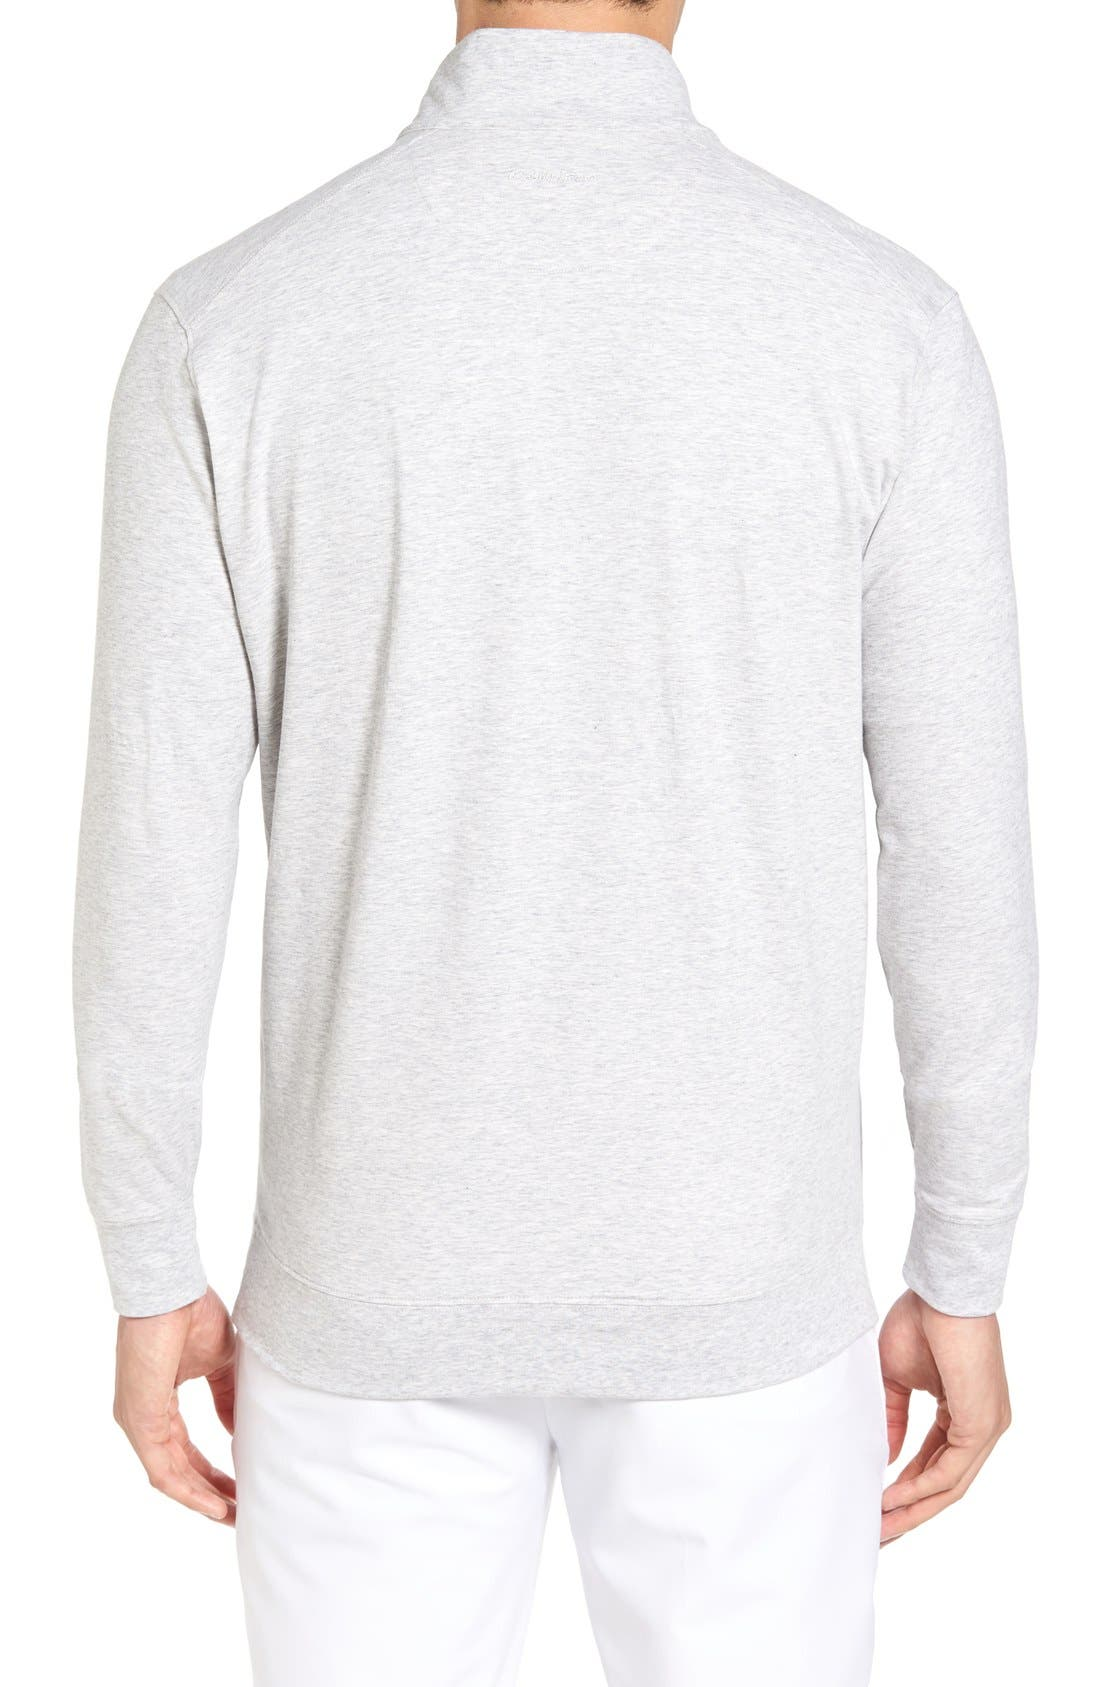 Alternate Image 2  - Bobby Jones PTO Liquid Stretch Quarter Zip Pullover